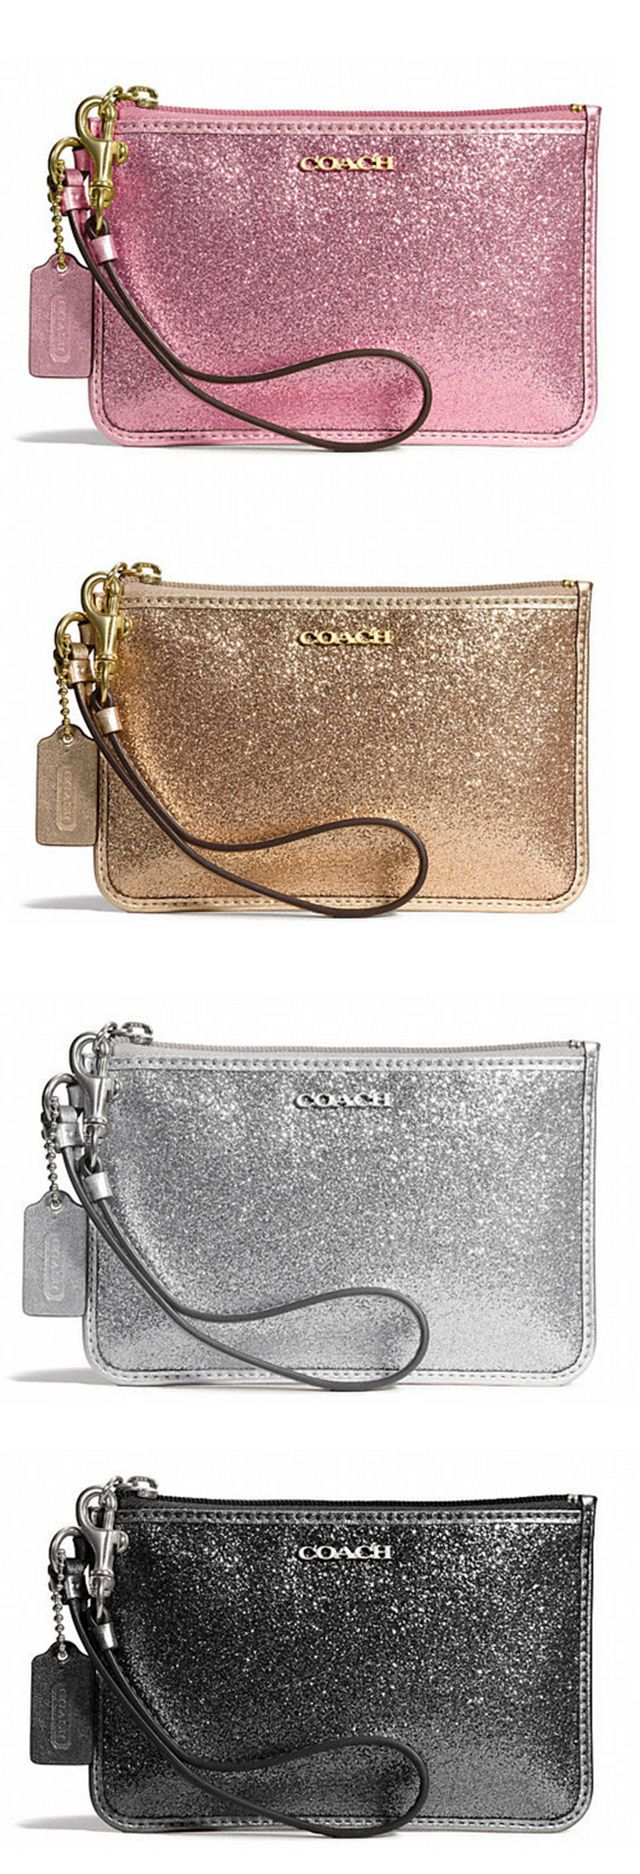 :D COACH Sparkly Wristlets - I'll take one in each color, please! ($ 48) | The Mindful Shopper